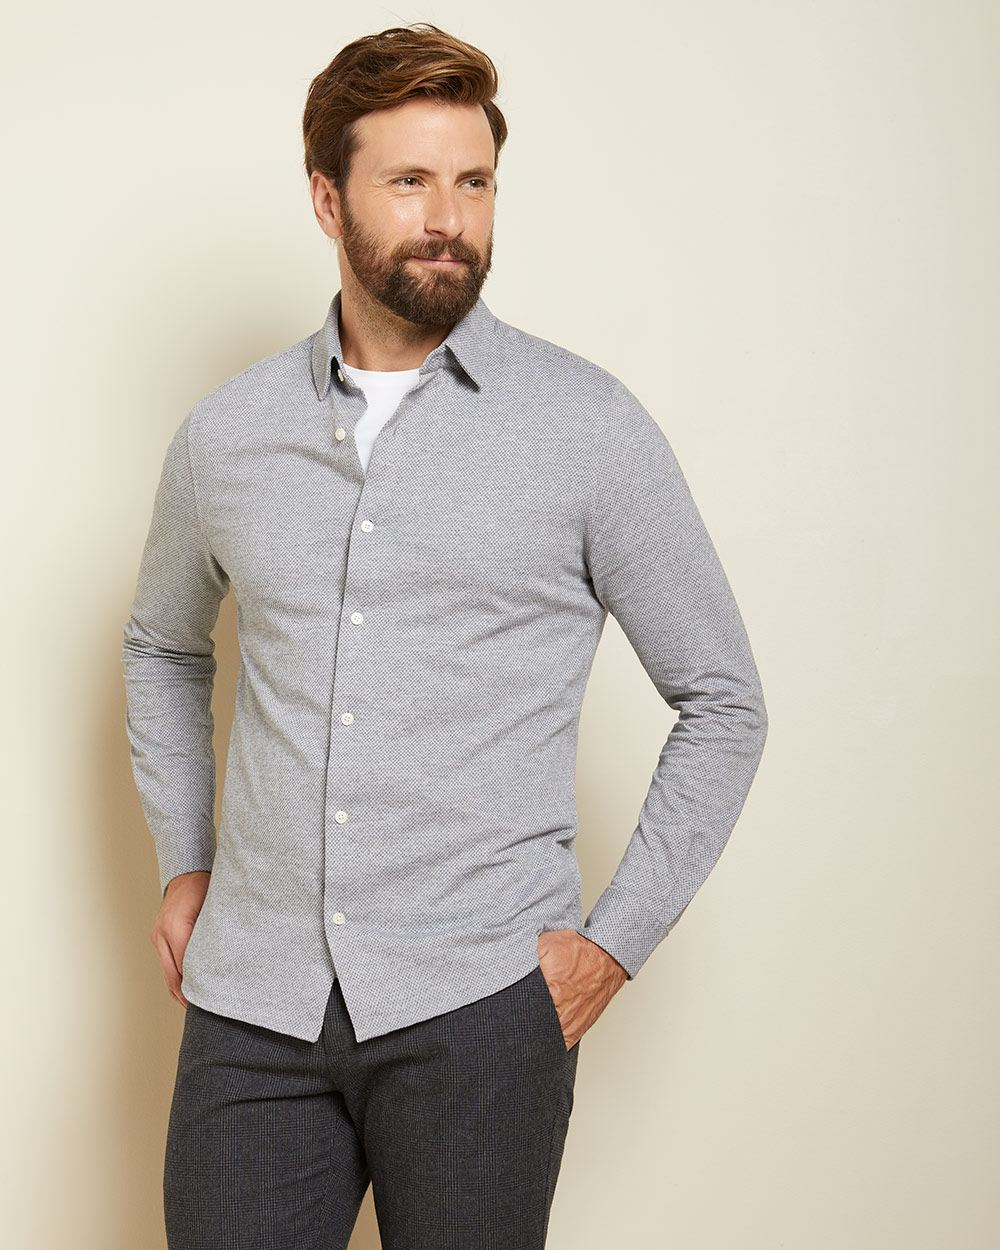 Slim fit patterned knit shirt